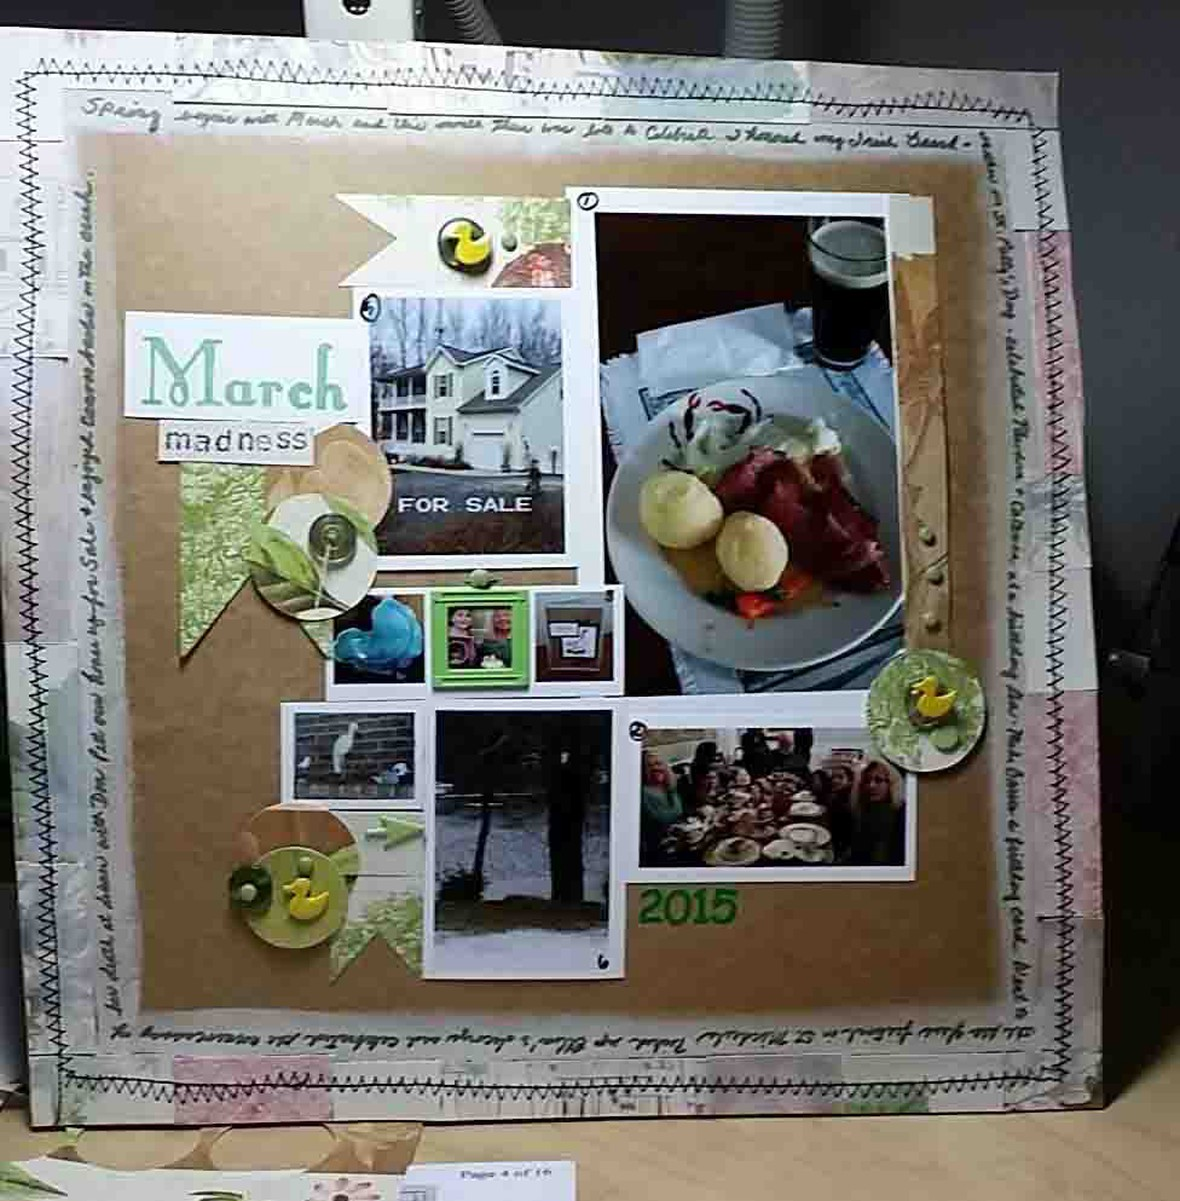 Marchscrapbookpage edited 2 original